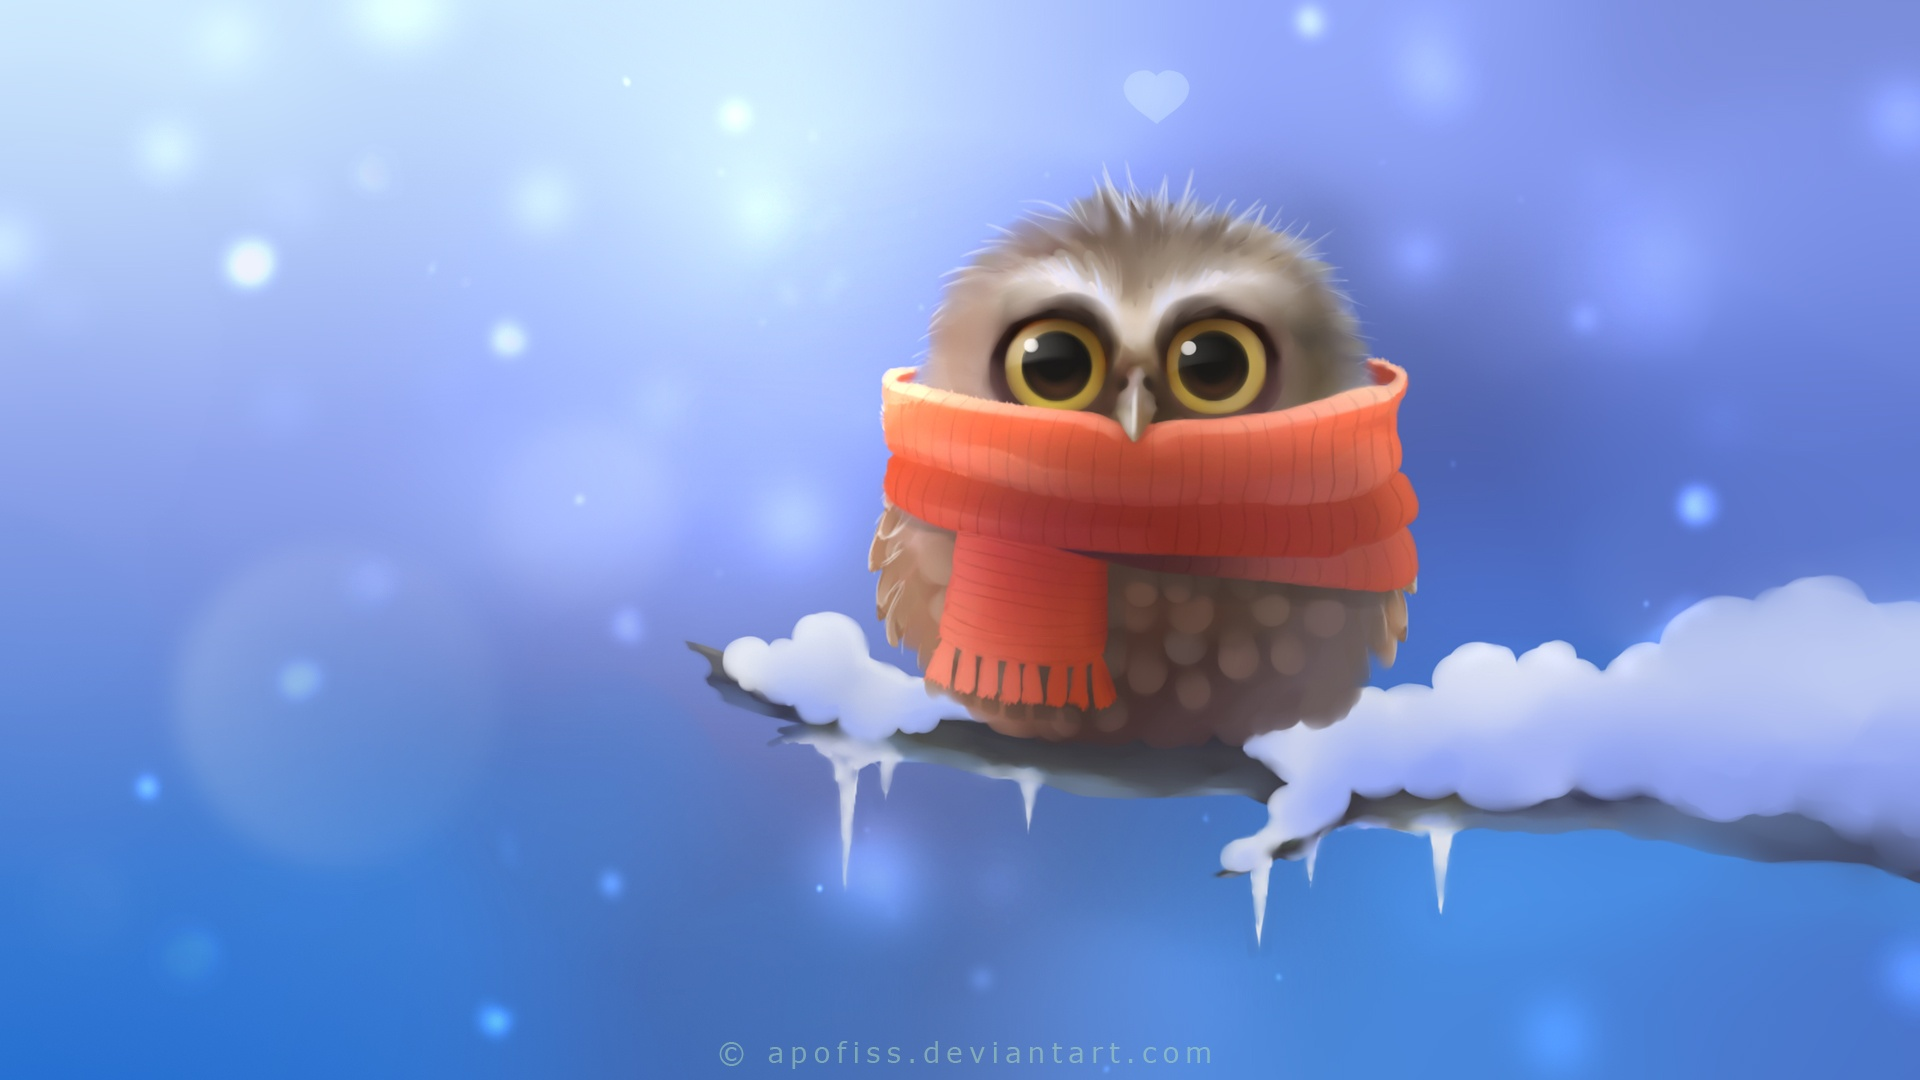 Cute Owl Wallpapers In Jpg Format For Free Download